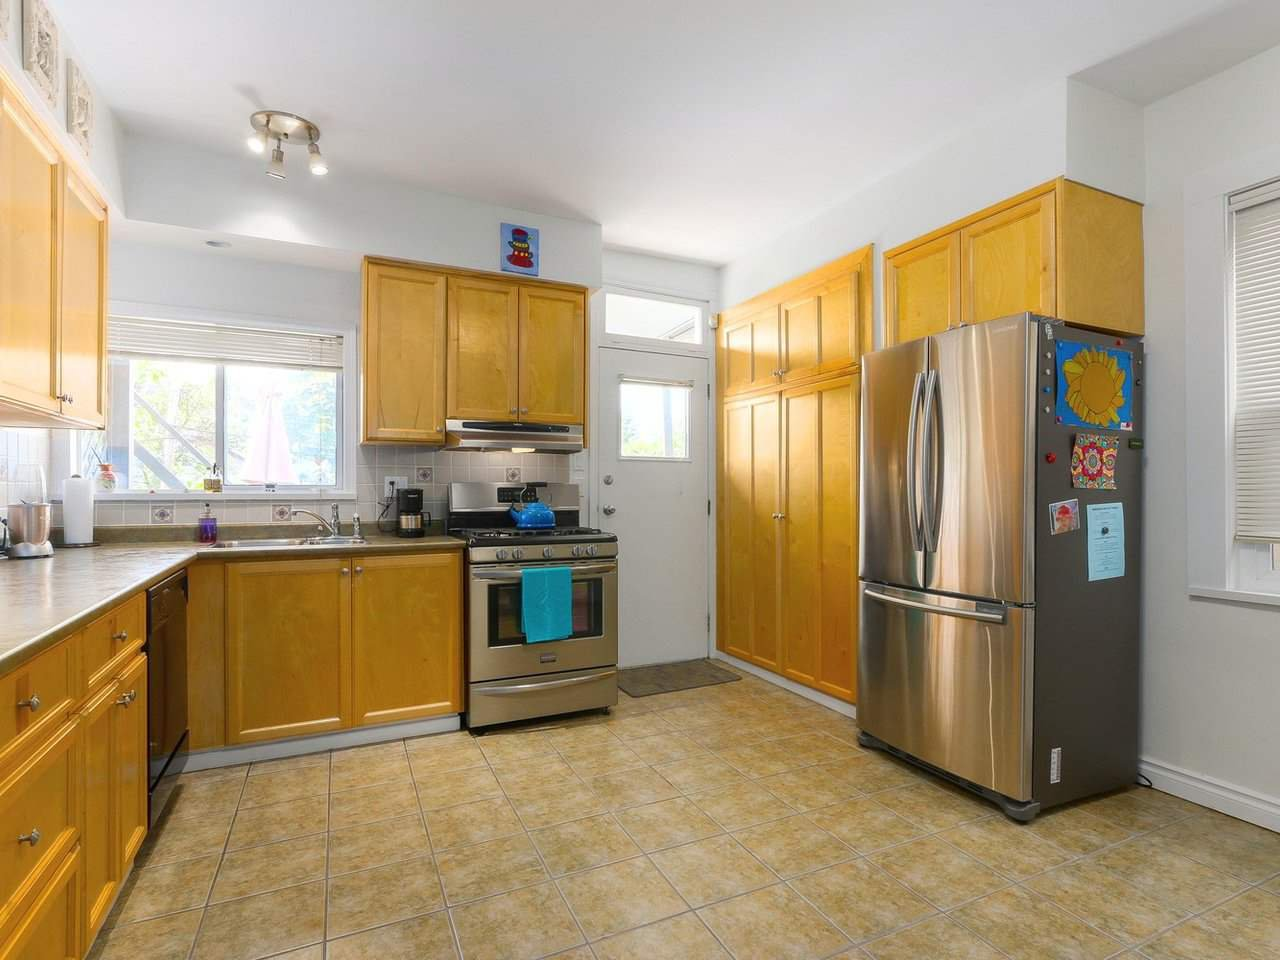 """Photo 4: Photos: 2610 W 10TH Avenue in Vancouver: Kitsilano House for sale in """"Kitsilano"""" (Vancouver West)  : MLS®# R2471992"""